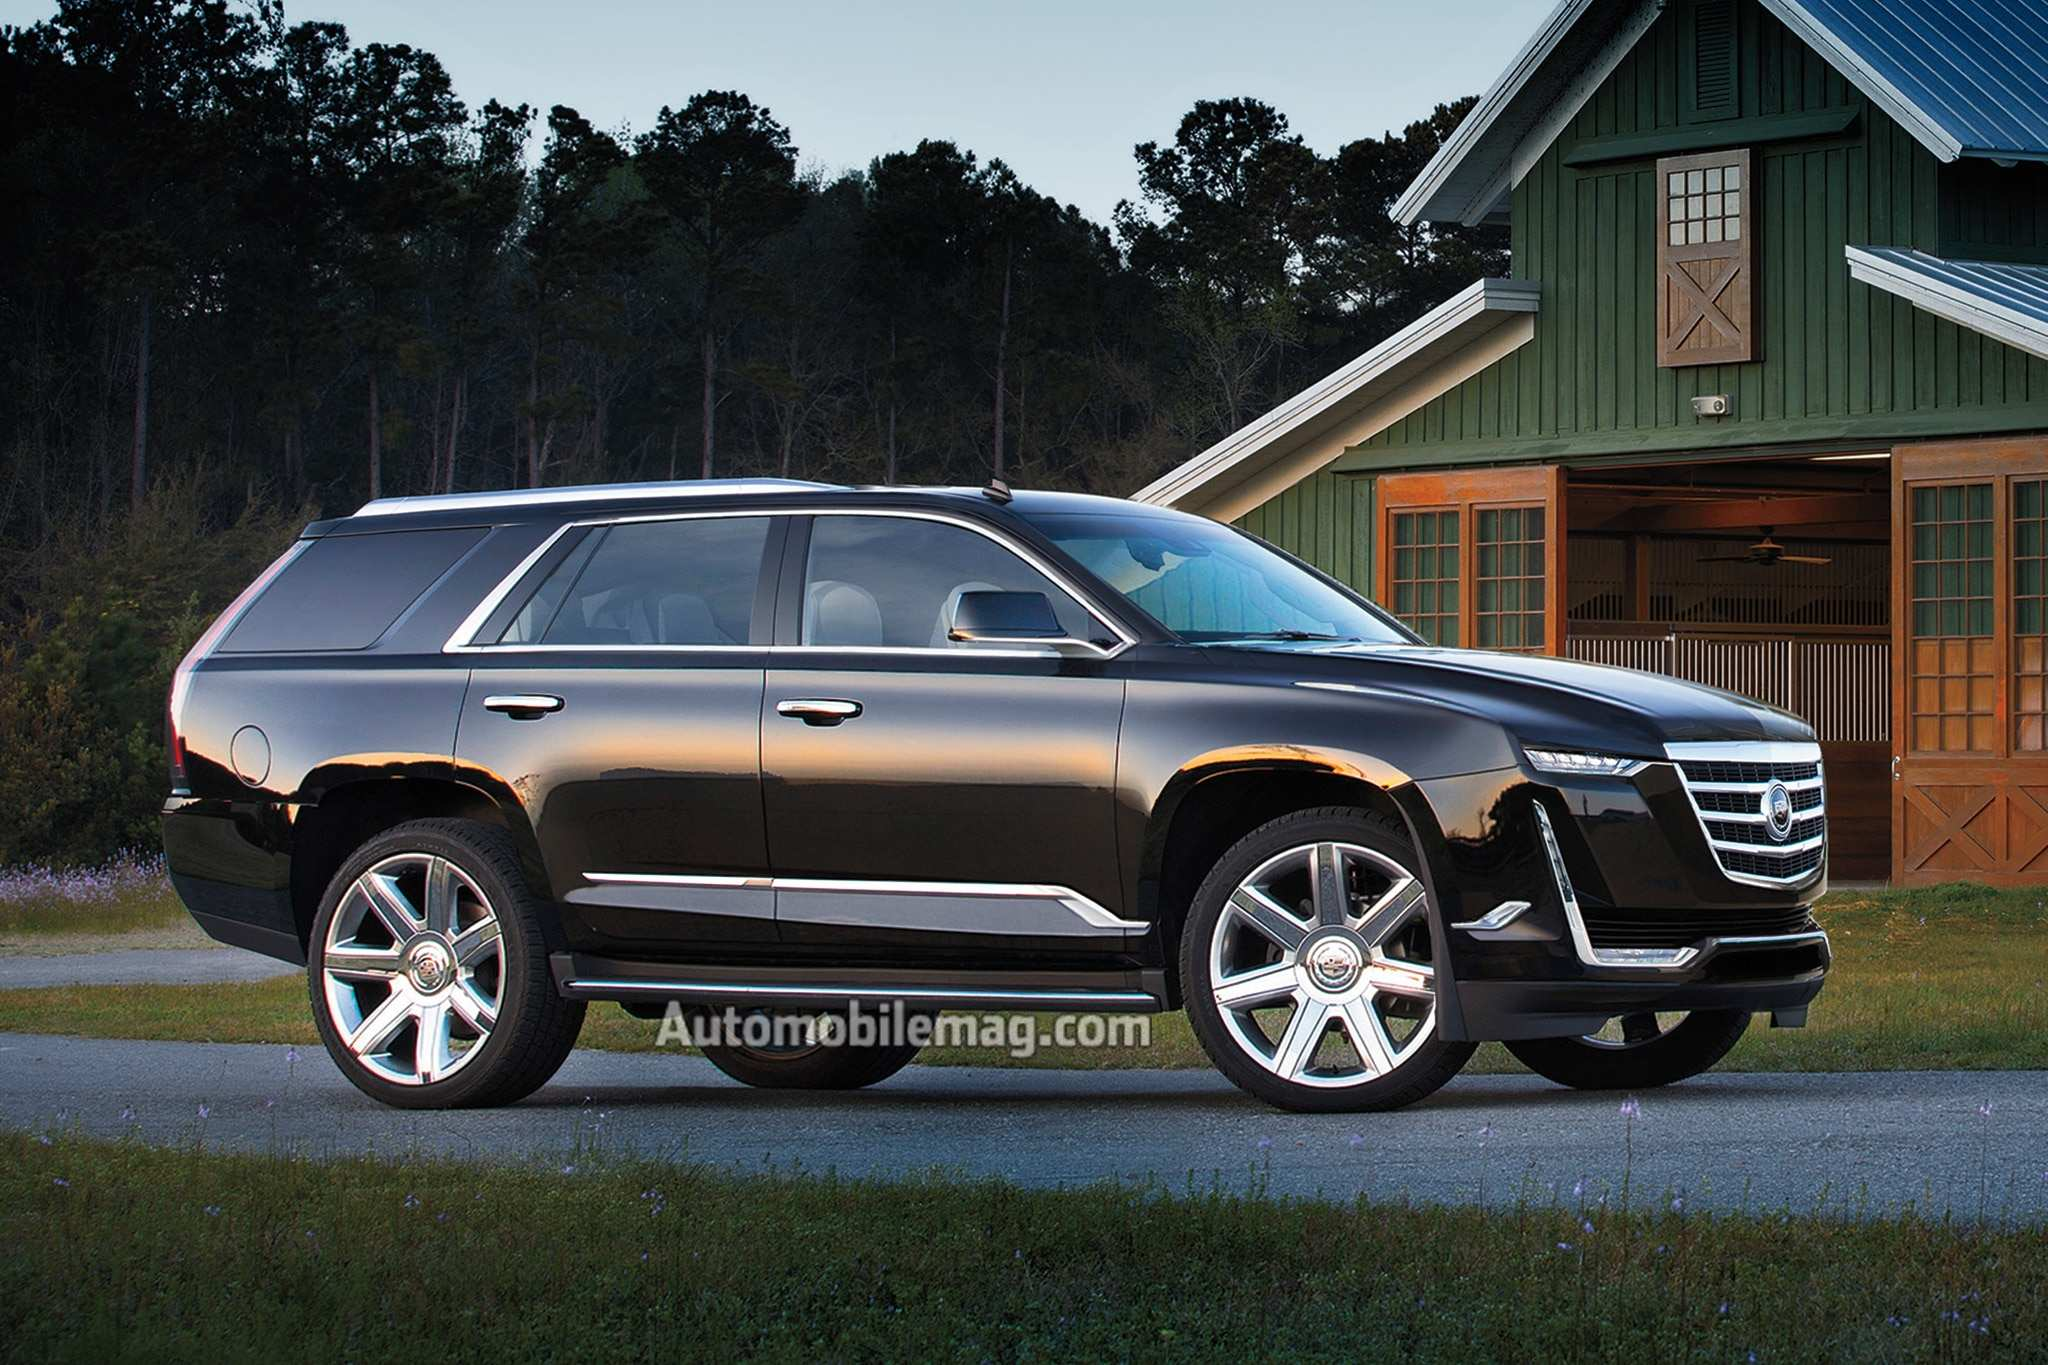 29 Great 2020 Cadillac Ext Specs and Review by 2020 Cadillac Ext